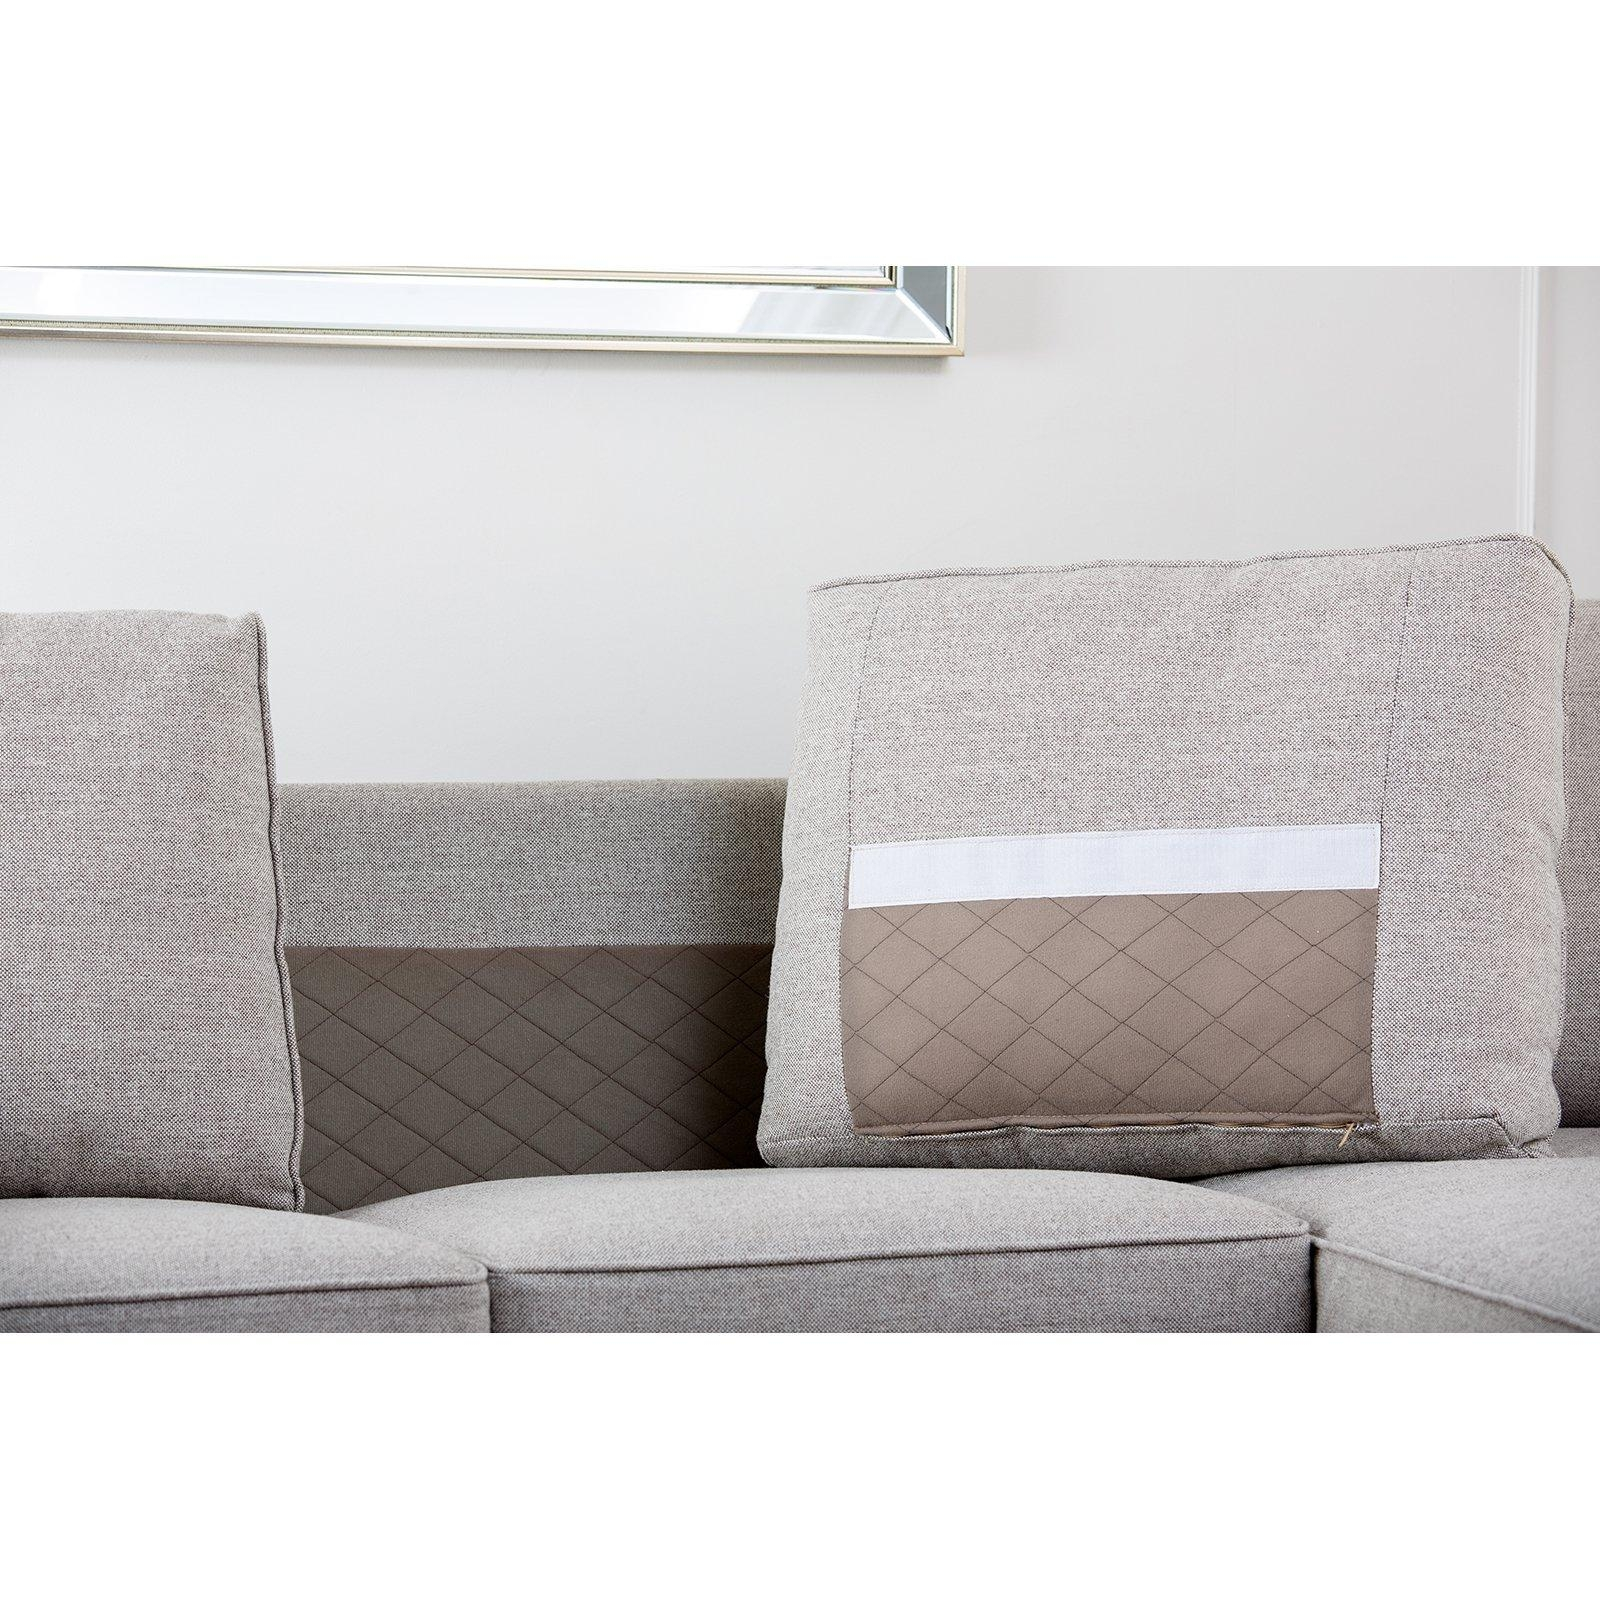 Abbyson Regina Sectional Sofa – Gray | Hayneedle In Abbyson Living Sectional Sofas (Image 10 of 20)